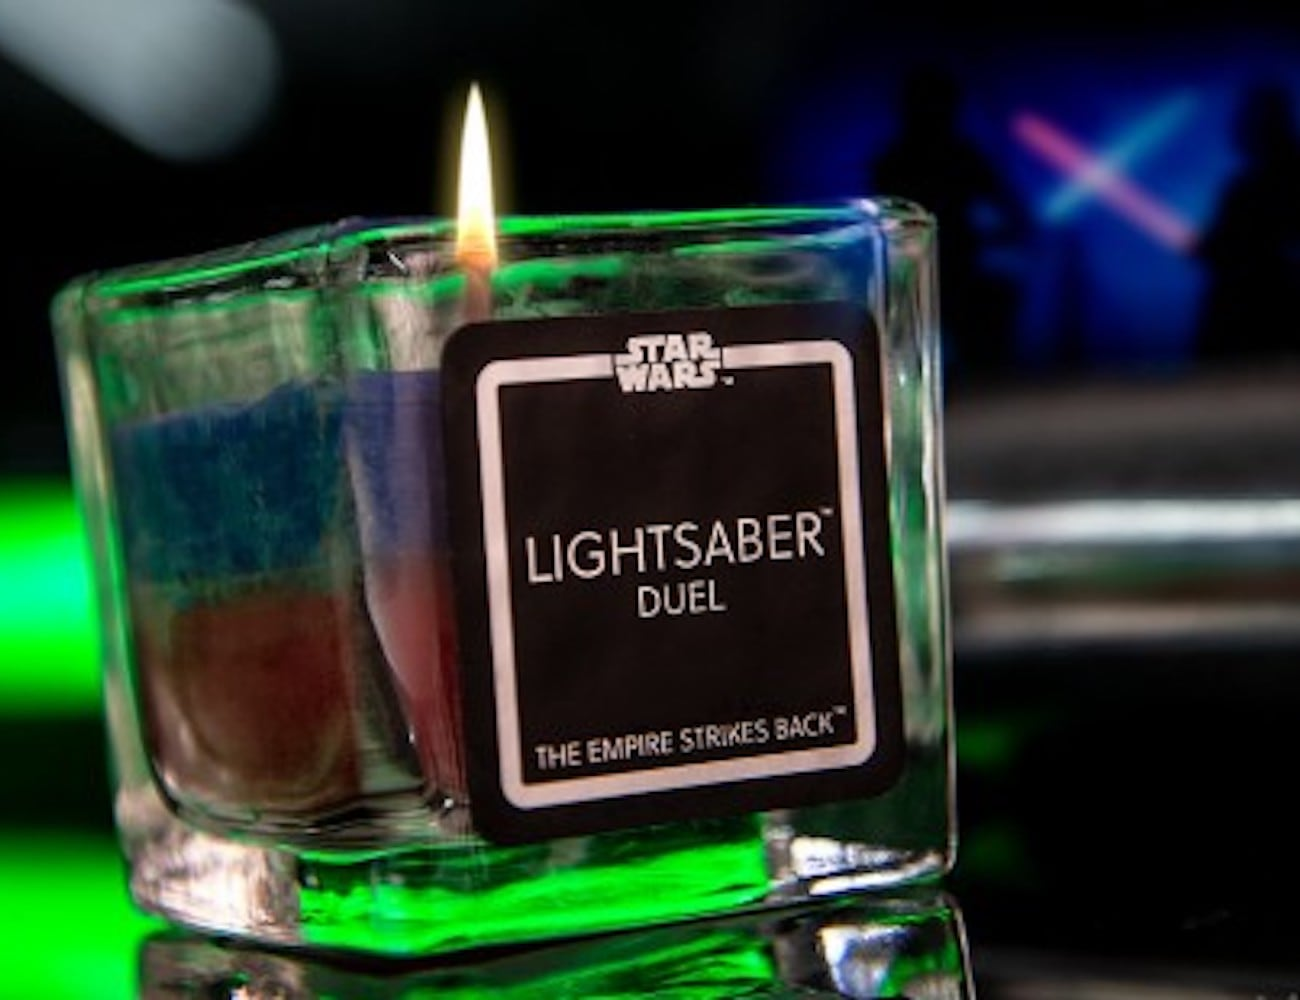 Star Wars: The Empire Strikes Back Collectible Candle Set includes scents from the film